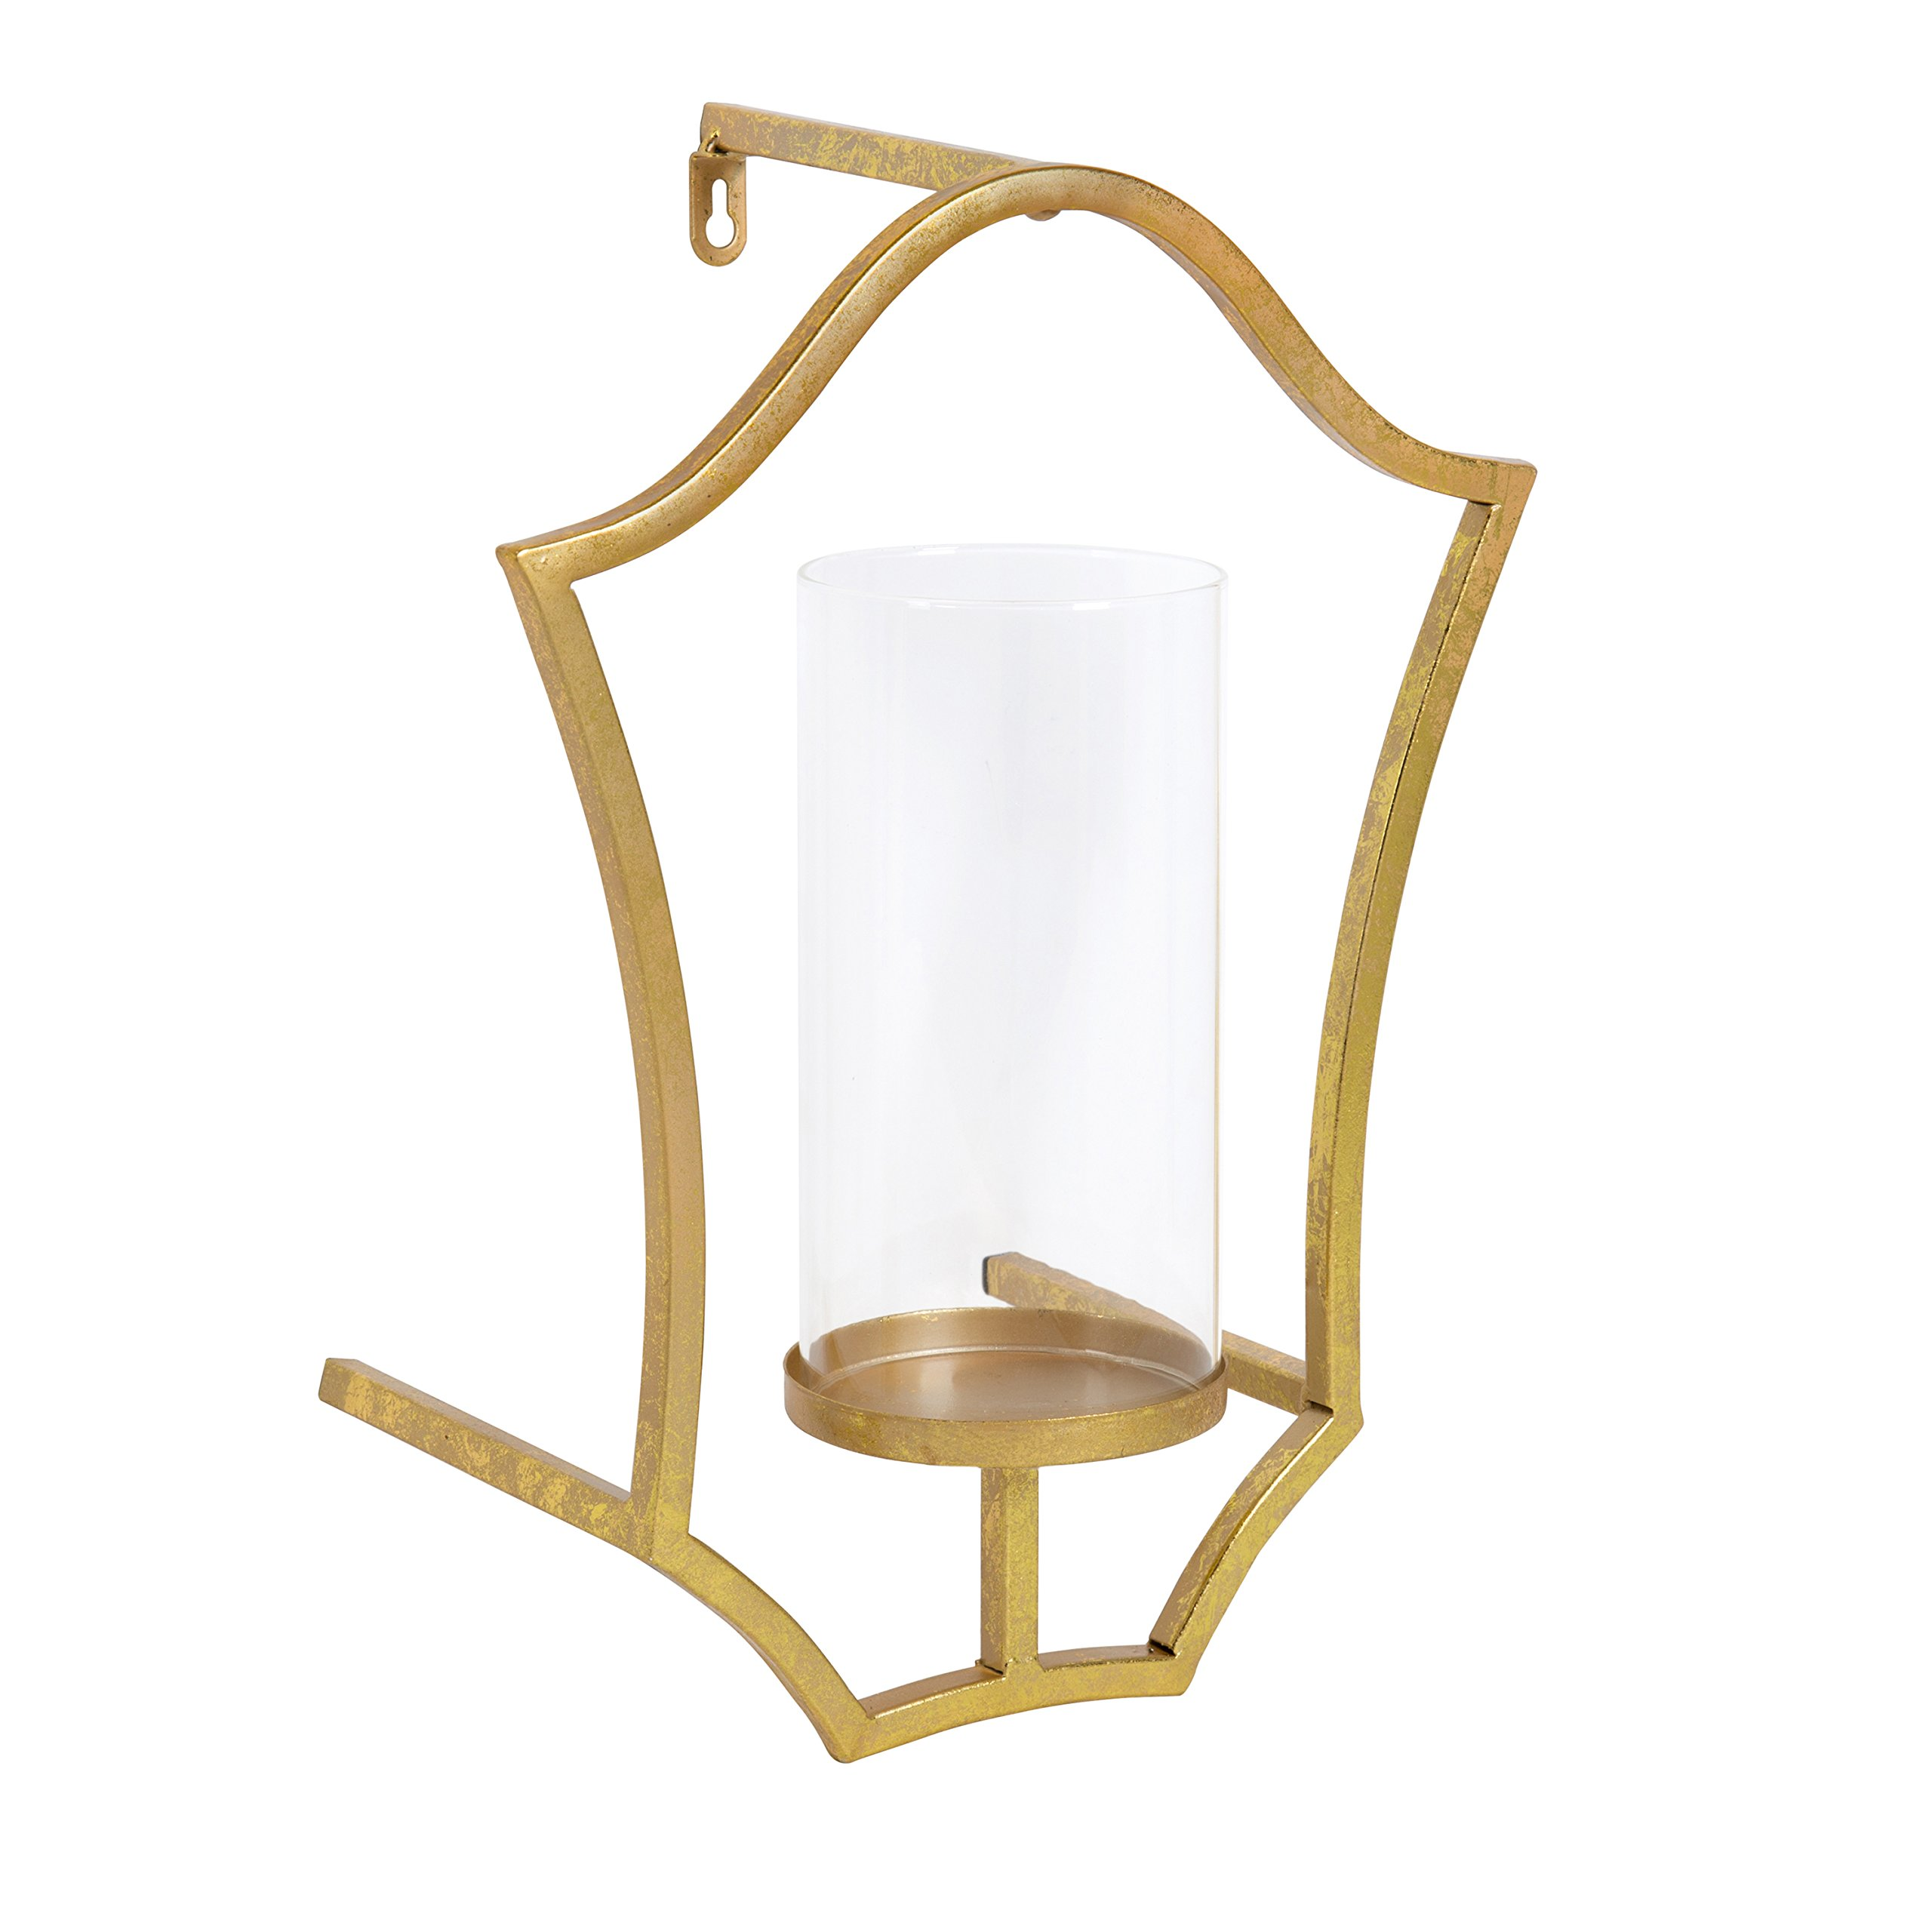 Kate and Laurel Curran Shield Metal Sconce Wall Candle Holder, with Glass Pillar, Gold